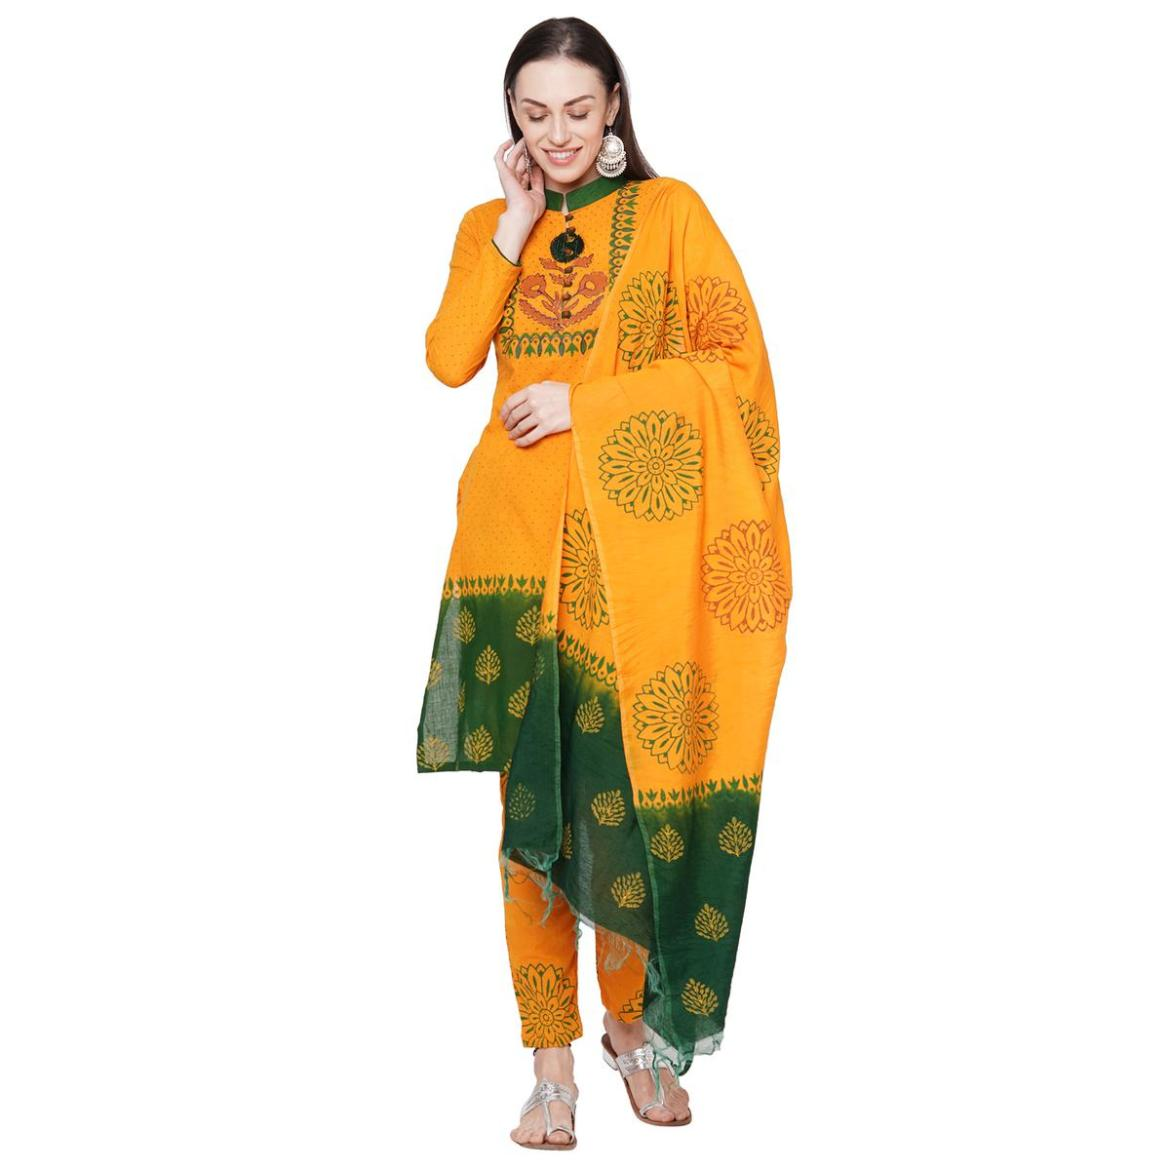 Iris - Mustard Yellow Colored Casual Block Printed Cotton Dress Material